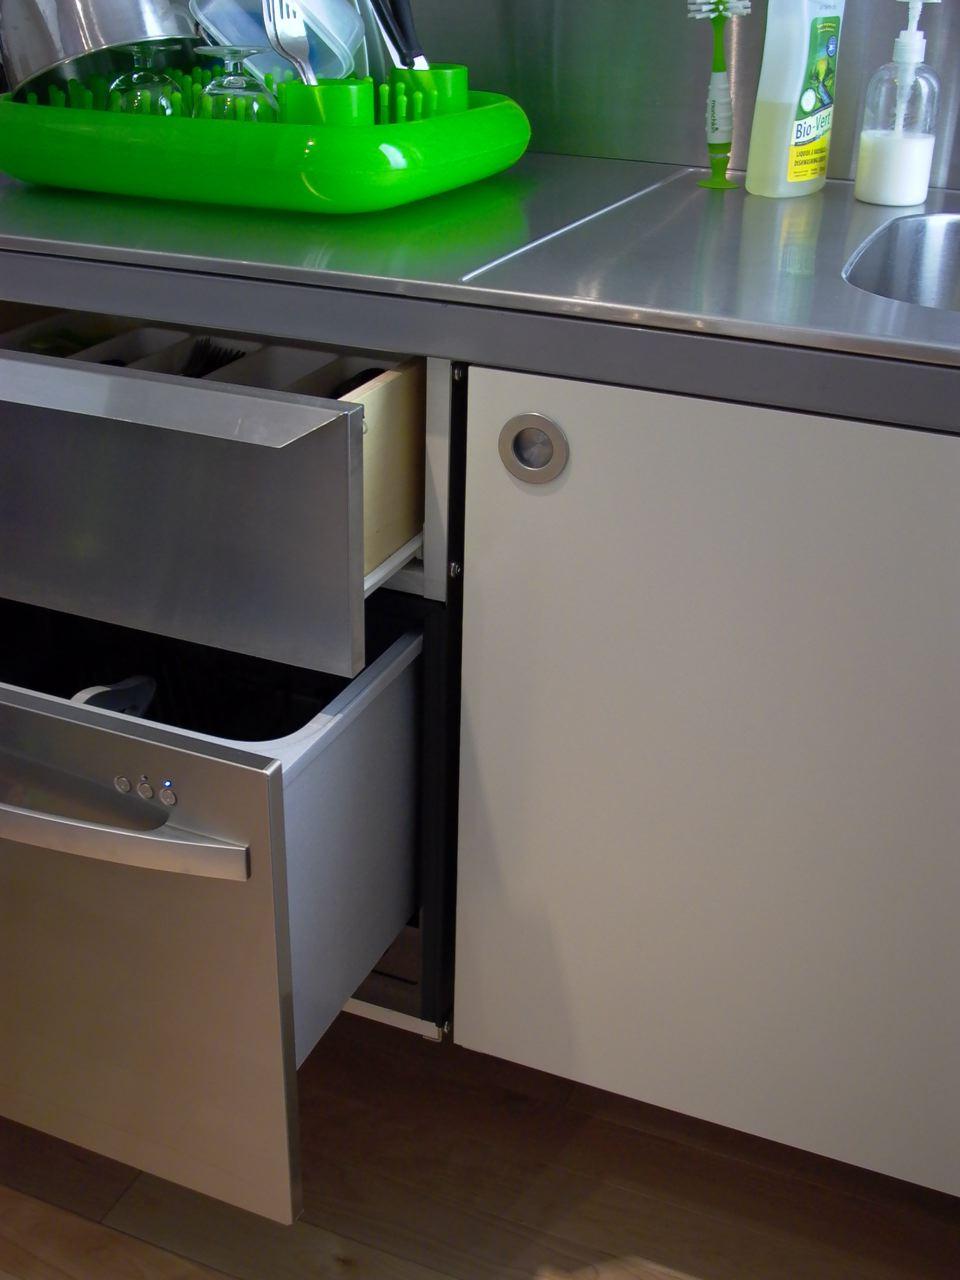 Fitted dishwasher for the Udden  IKEA Hackers  IKEA Hackers -> Kuchnia Ikea Udden